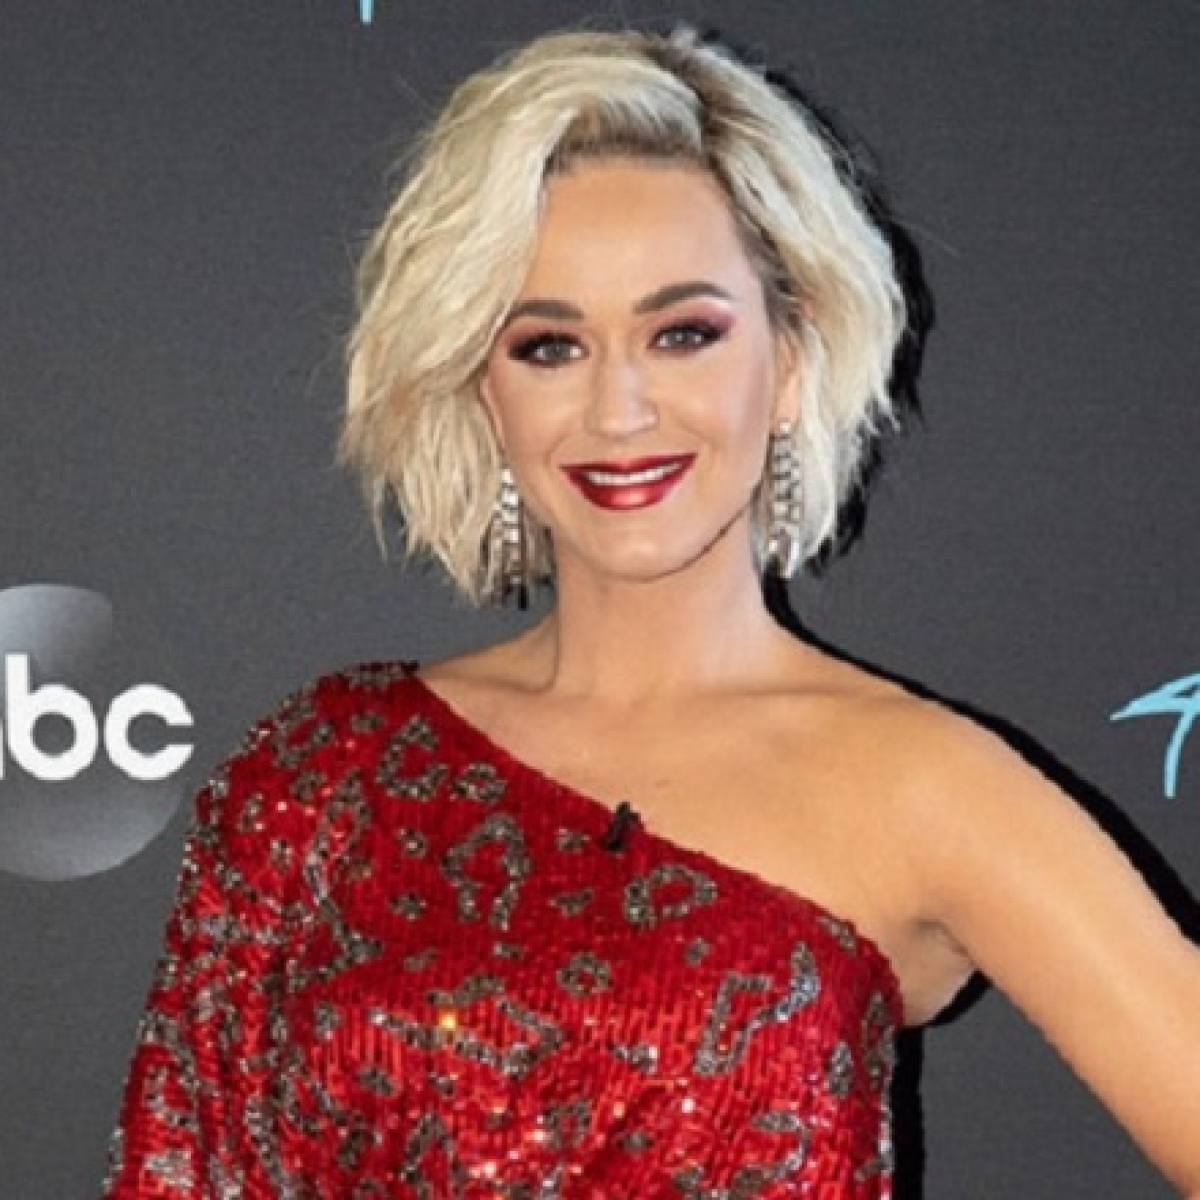 'To get through levels of life, you have to be resilient,' says Singer Katy Perry